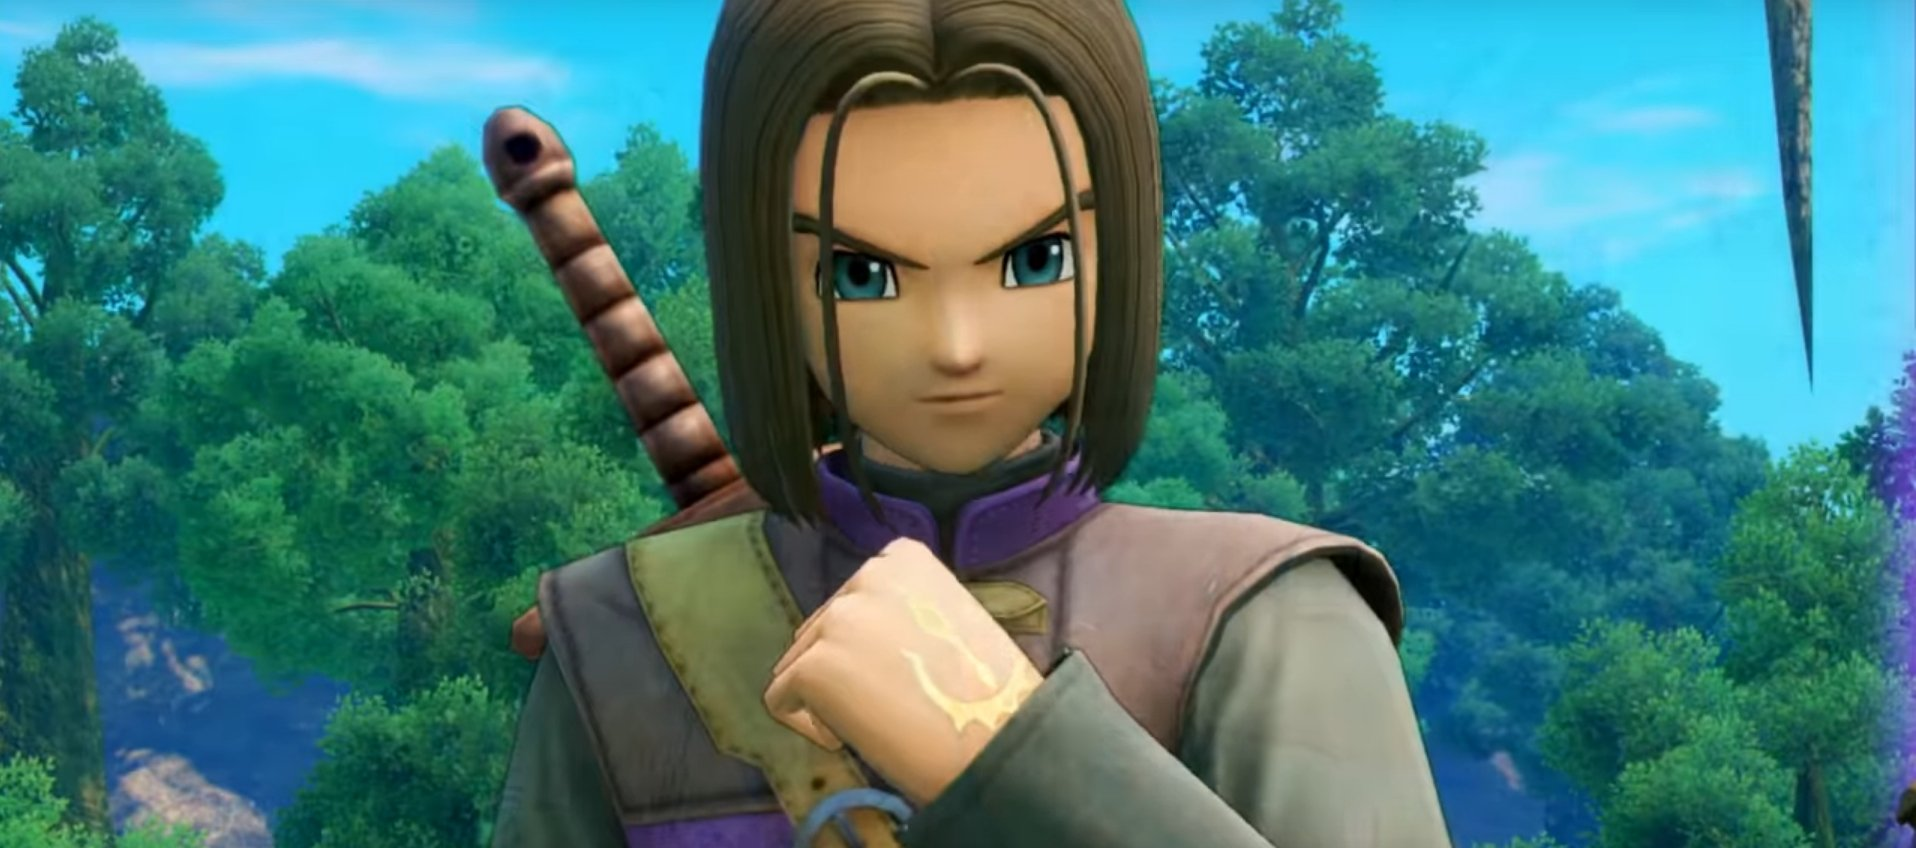 Dragon Quest XI Has Been Removed From Both Steam And PlayStation Network After Re-Release